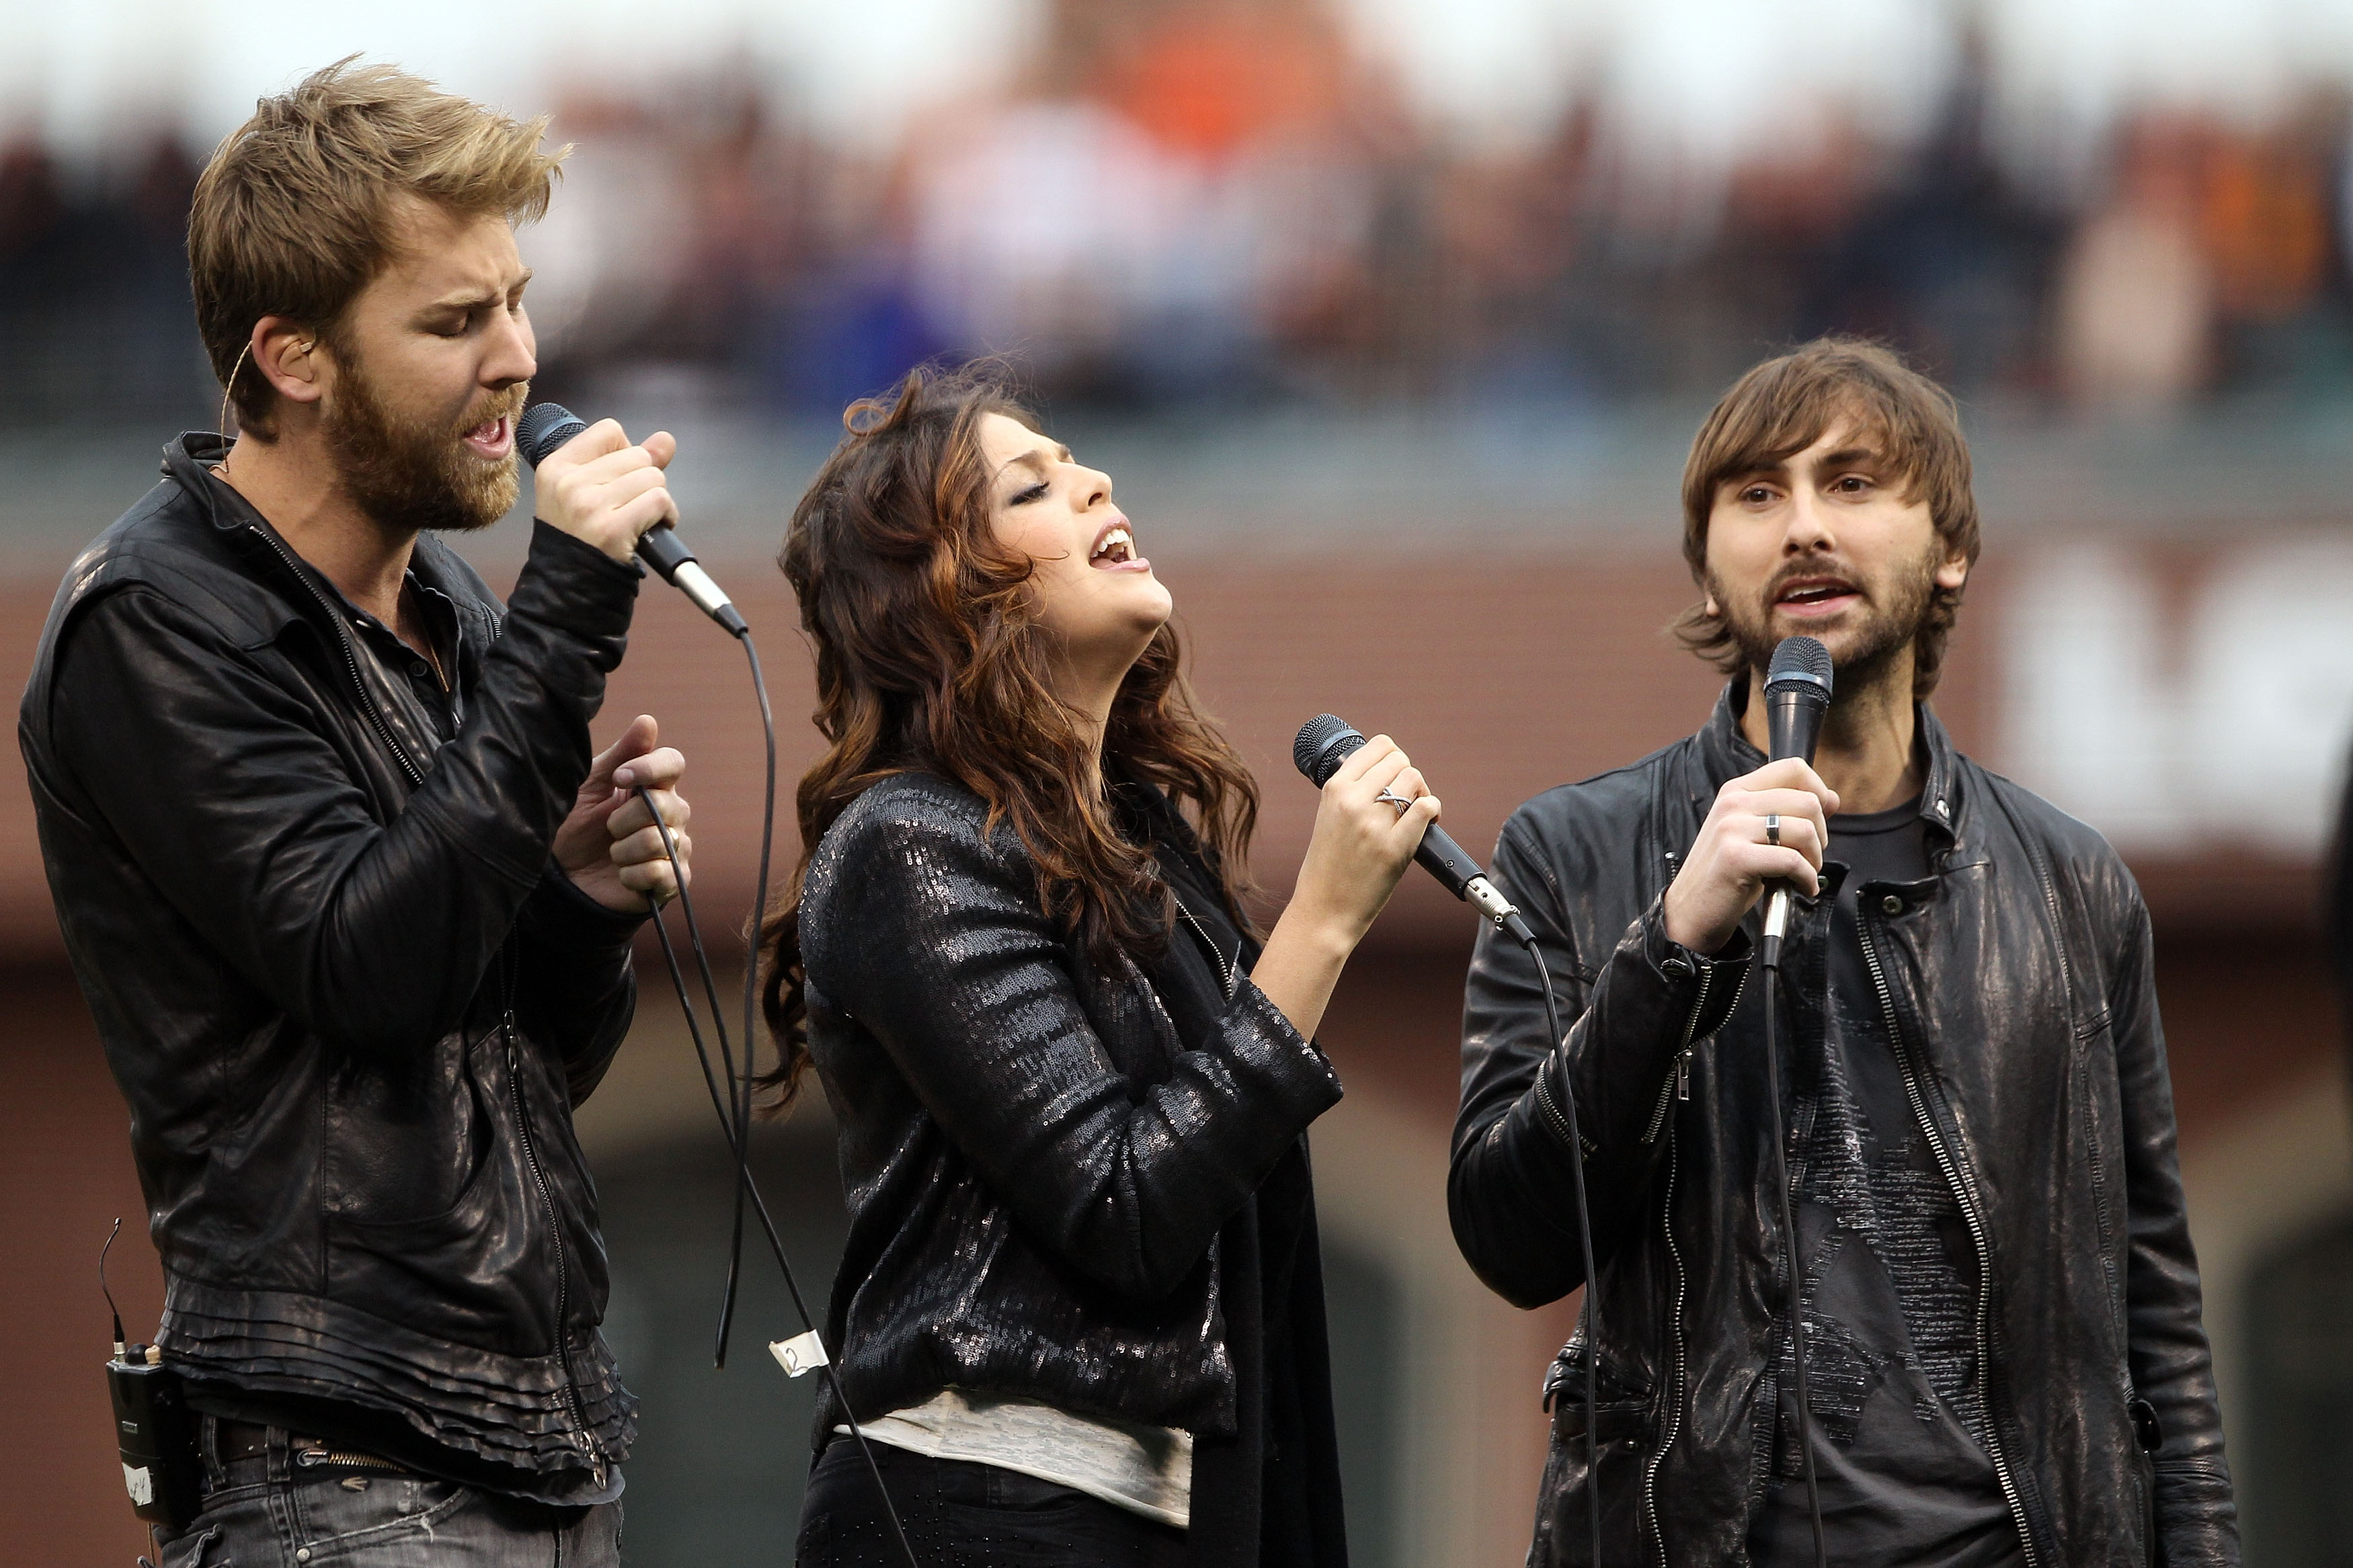 SAN FRANCISCO - OCTOBER 28:  Charles Kelly (L), Hillary Scott and Dave Haywood (R) of Lady Antebellum sing the national anthem before the start of Game Two of the 2010 MLB World Series between the San Francisco Giants and Texas Rangers on October 28, 2010